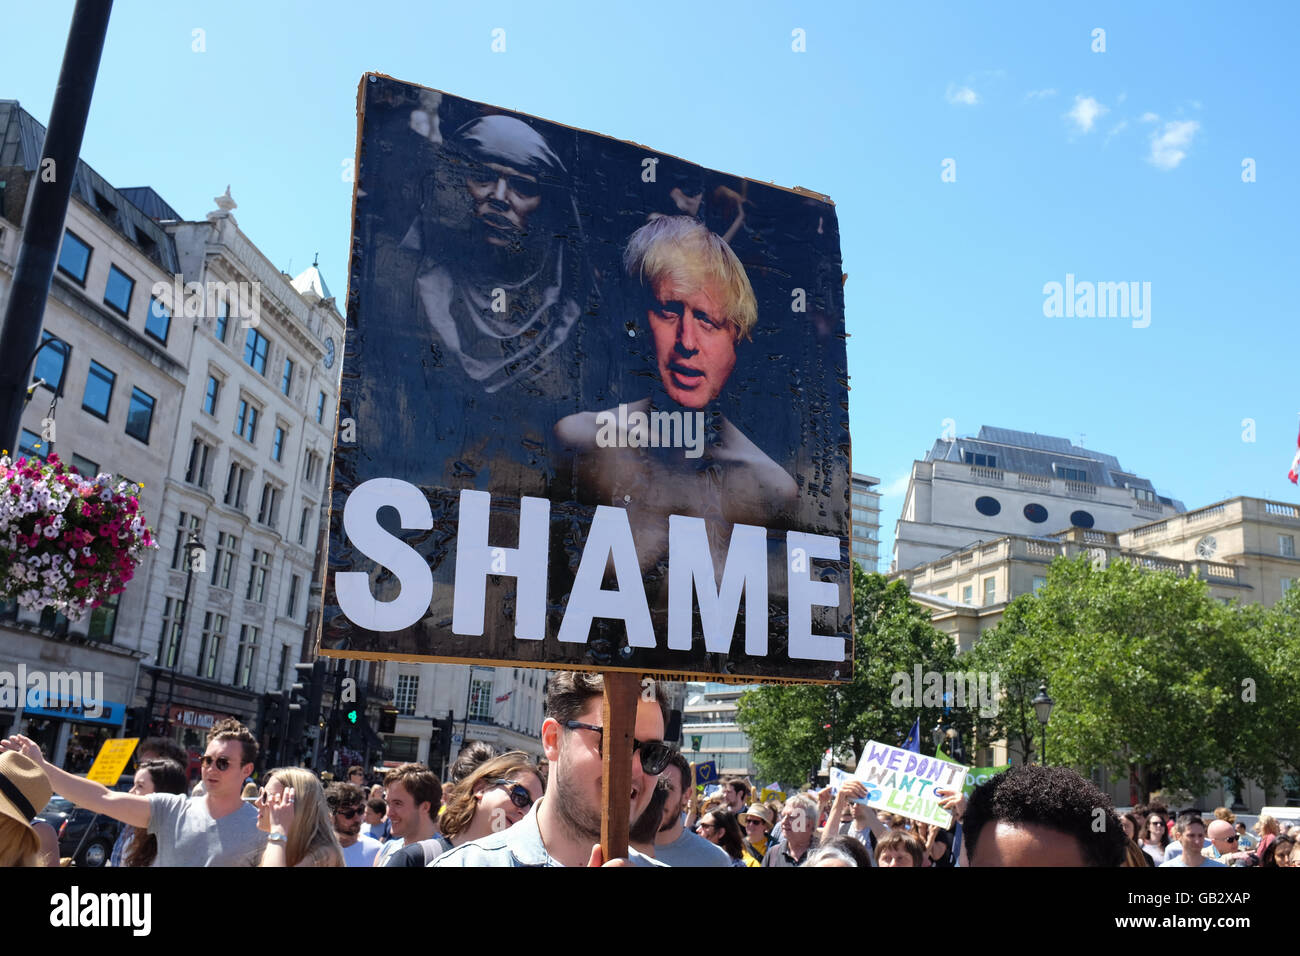 A placard showing Boris Johnson at an anti-Brexit protest in London on 2nd July, 2016. - Stock Image